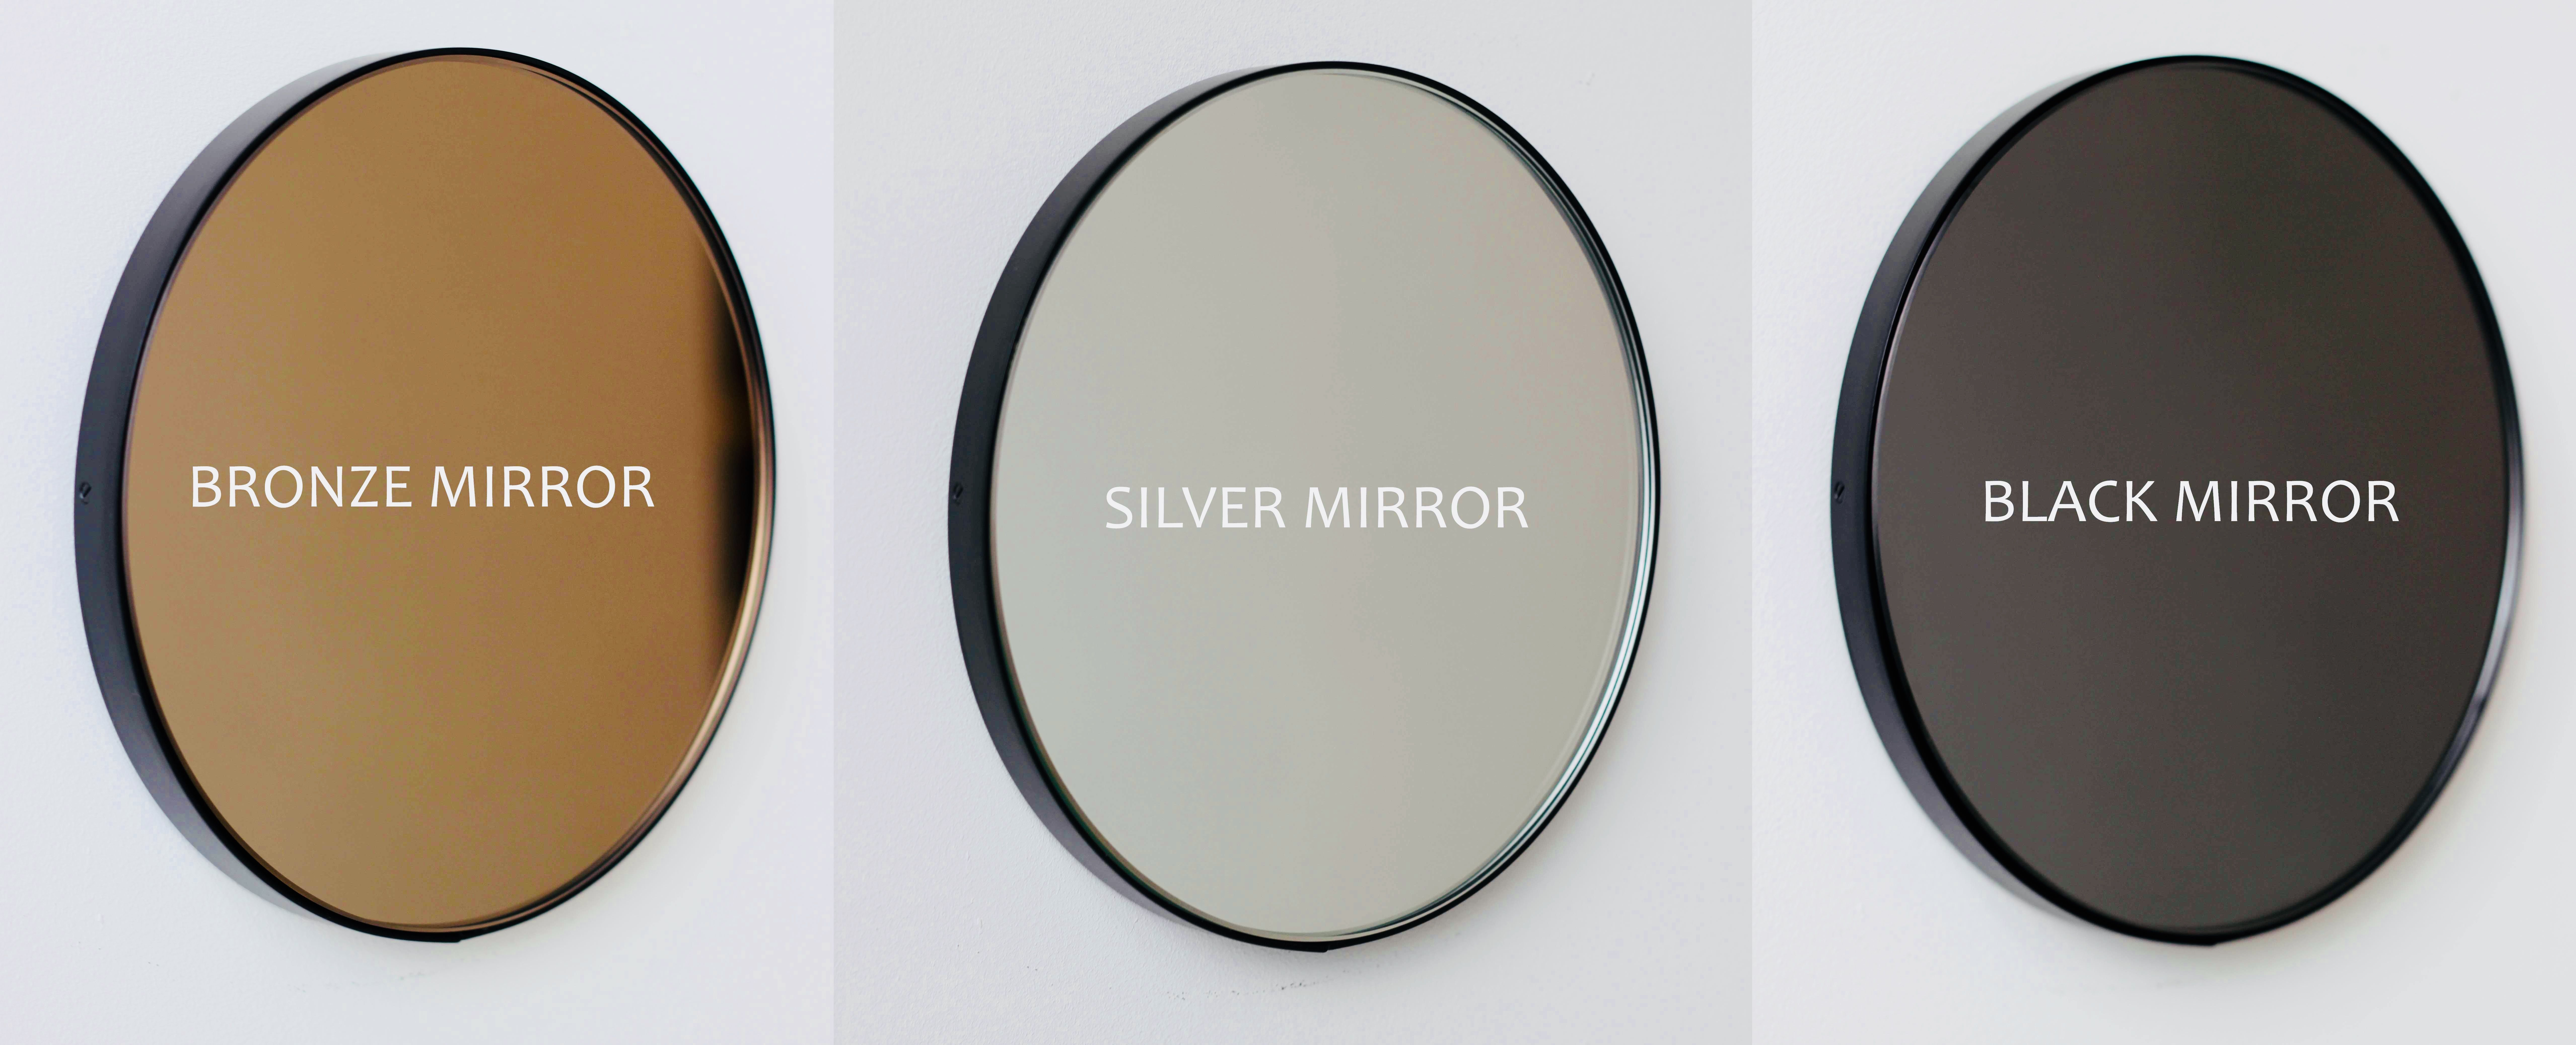 Silver orbis round mirror with black or white frame round mirrors